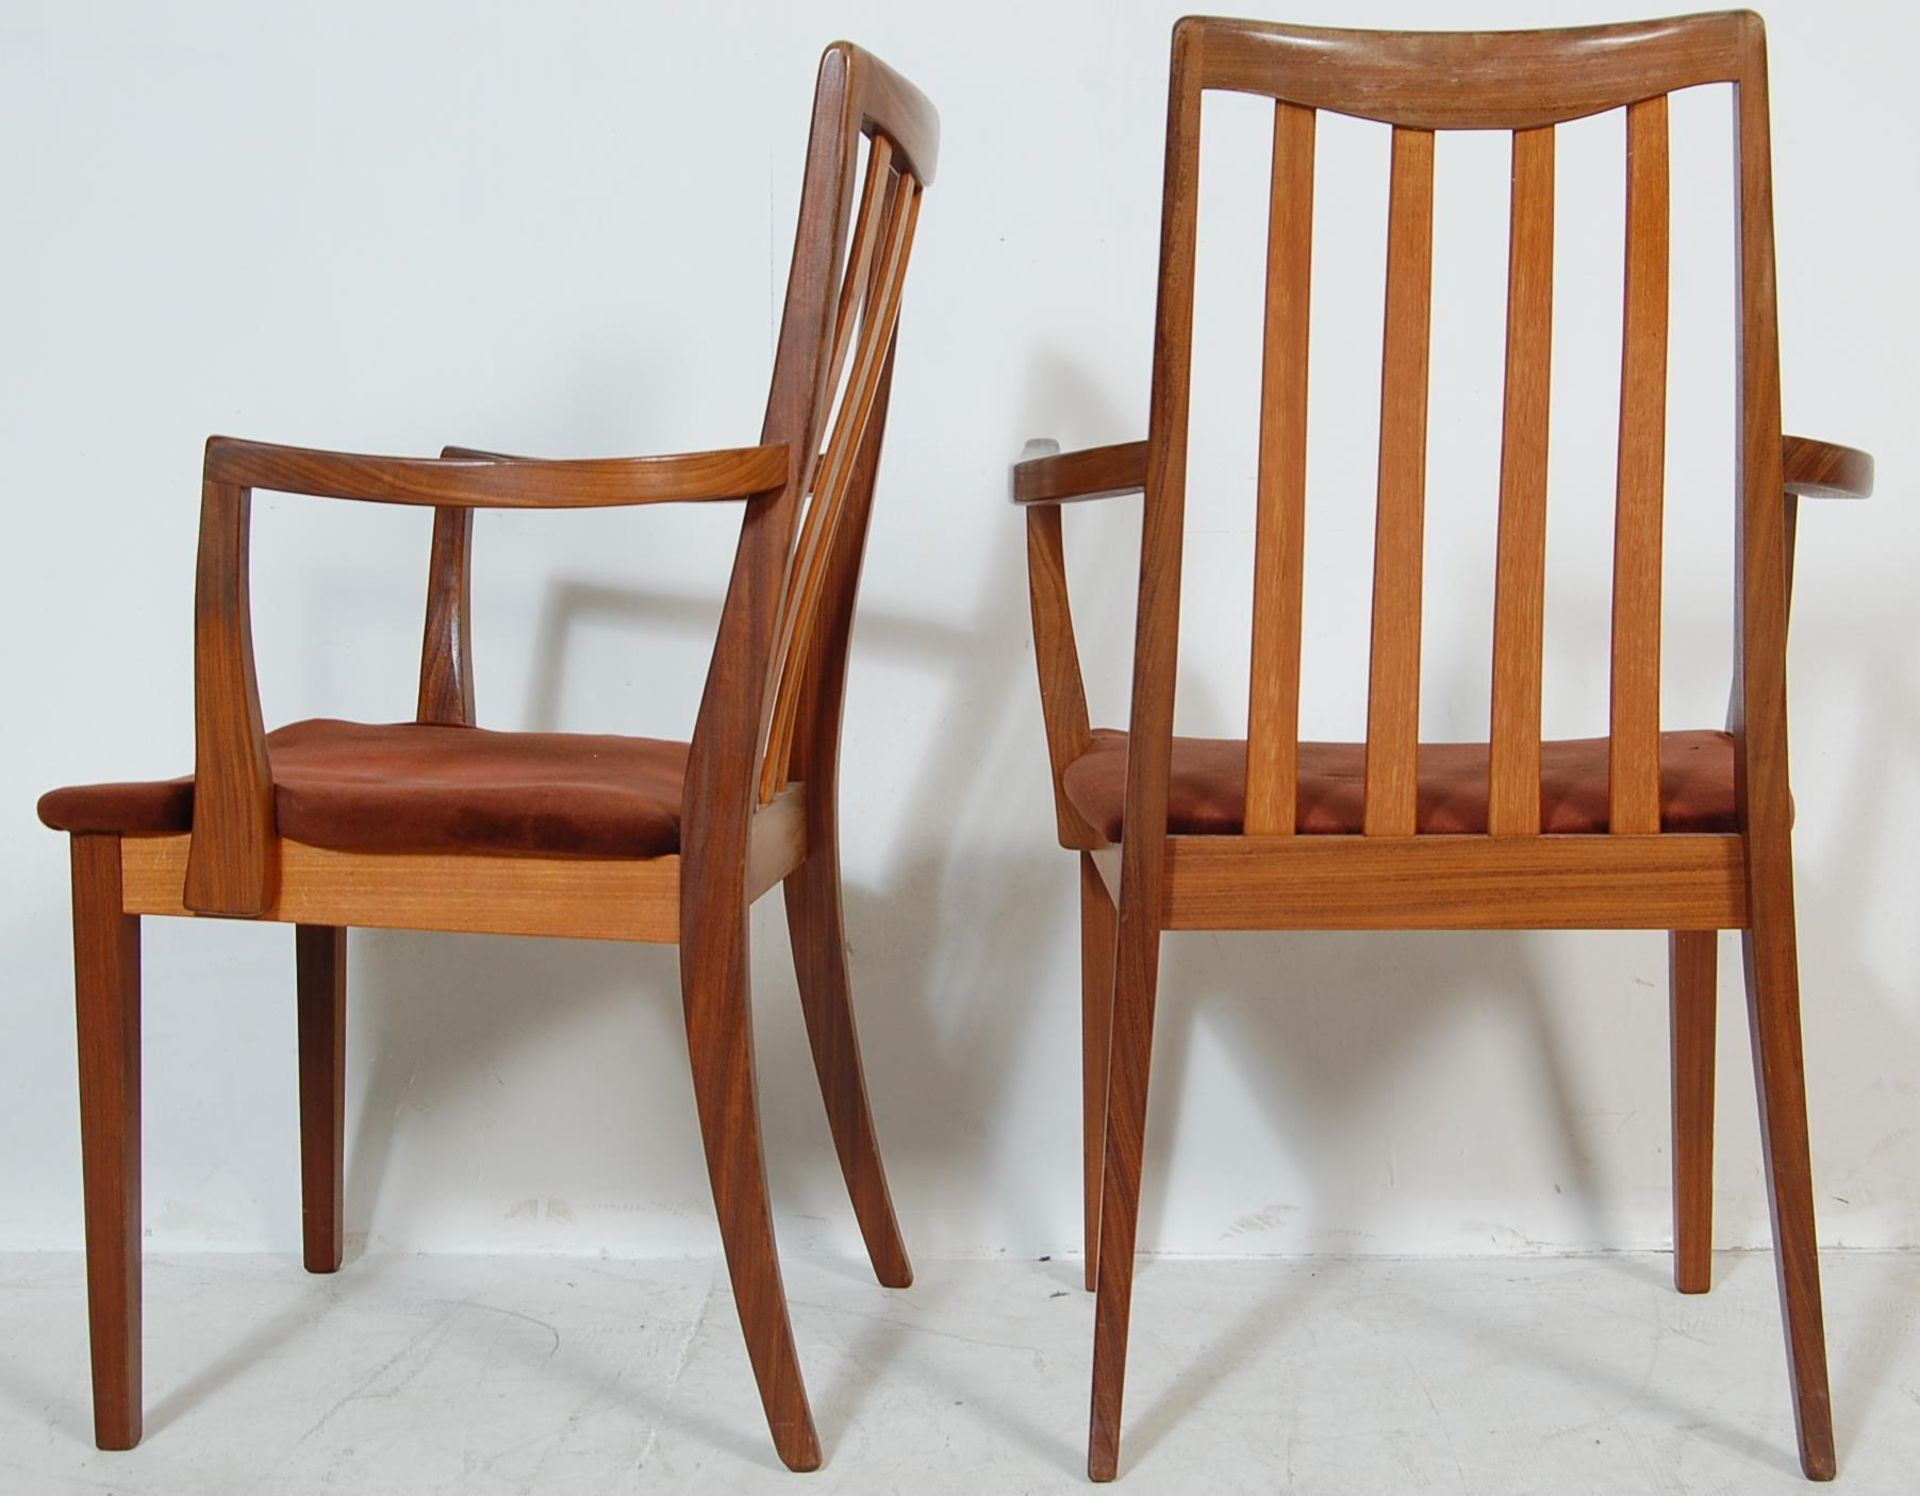 RETRO VINTAGE 1970S GPLAN DINING TABLE AND CHAIRS - Image 12 of 12